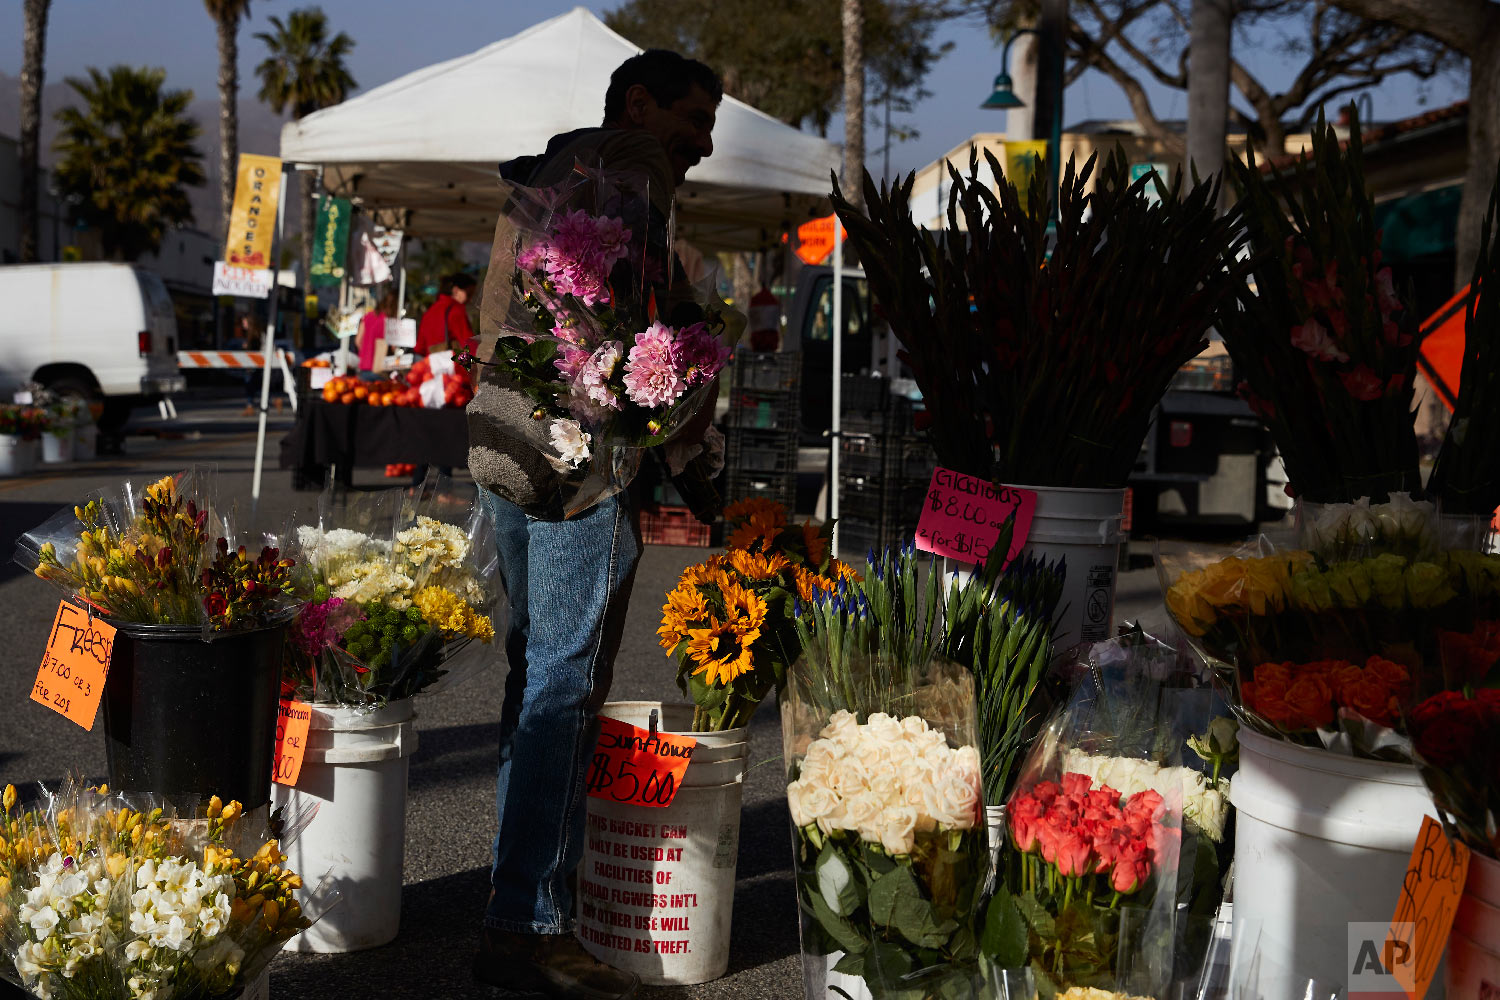 A man buys locally grown flowers at a farmers' market Thursday, April 12, 2018, in Carpinteria, Calif. (AP Photo/Jae C. Hong)